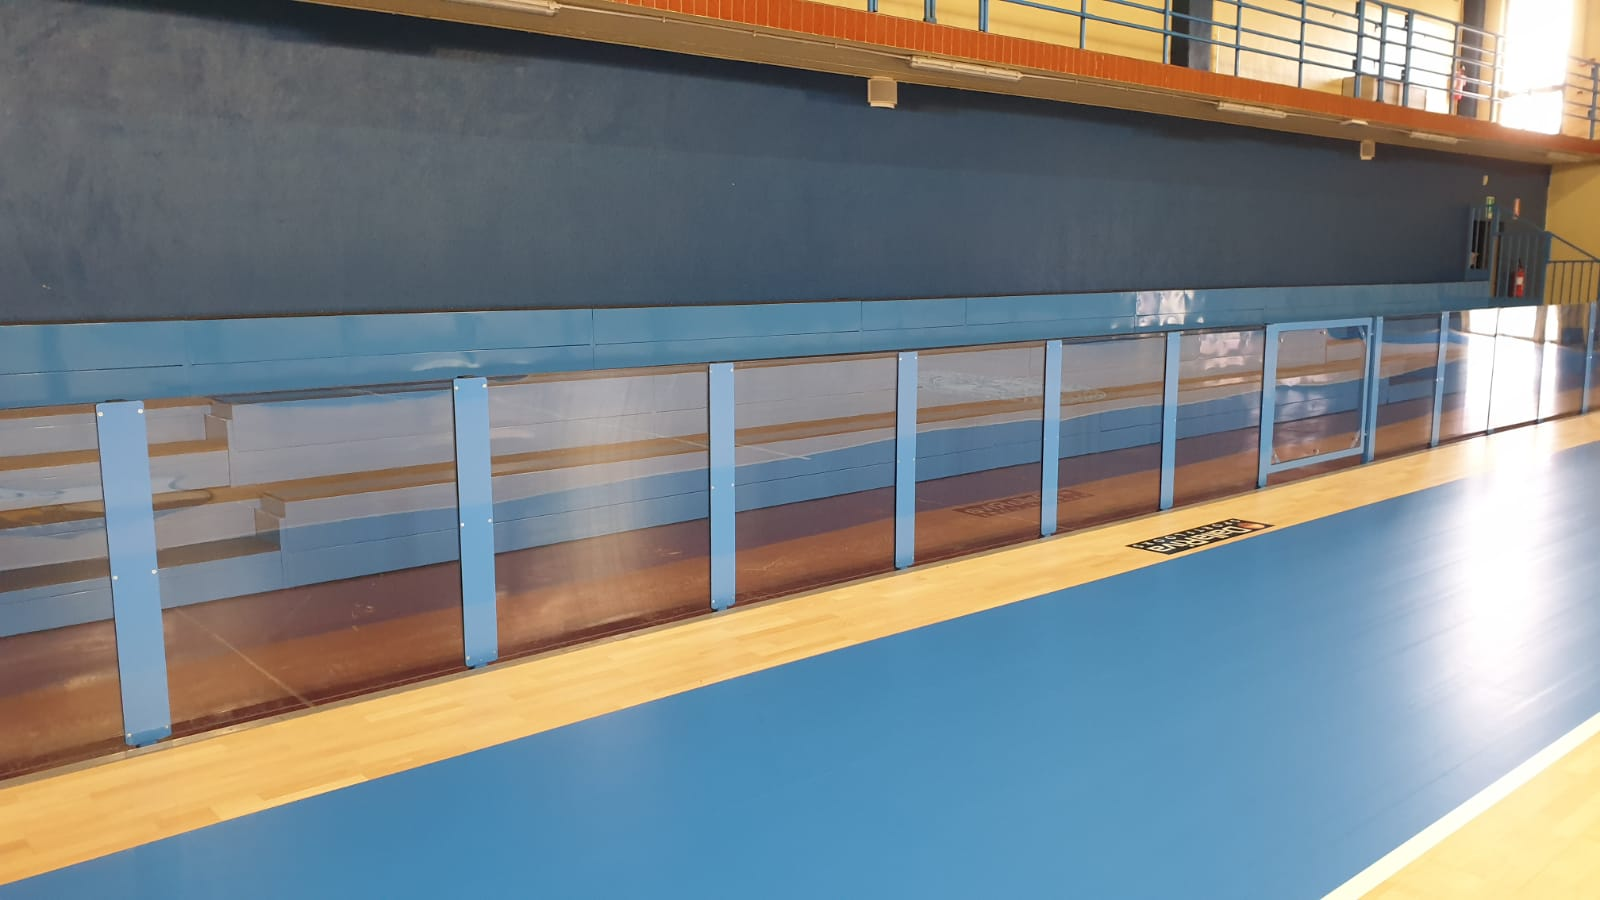 The new transparent barriers